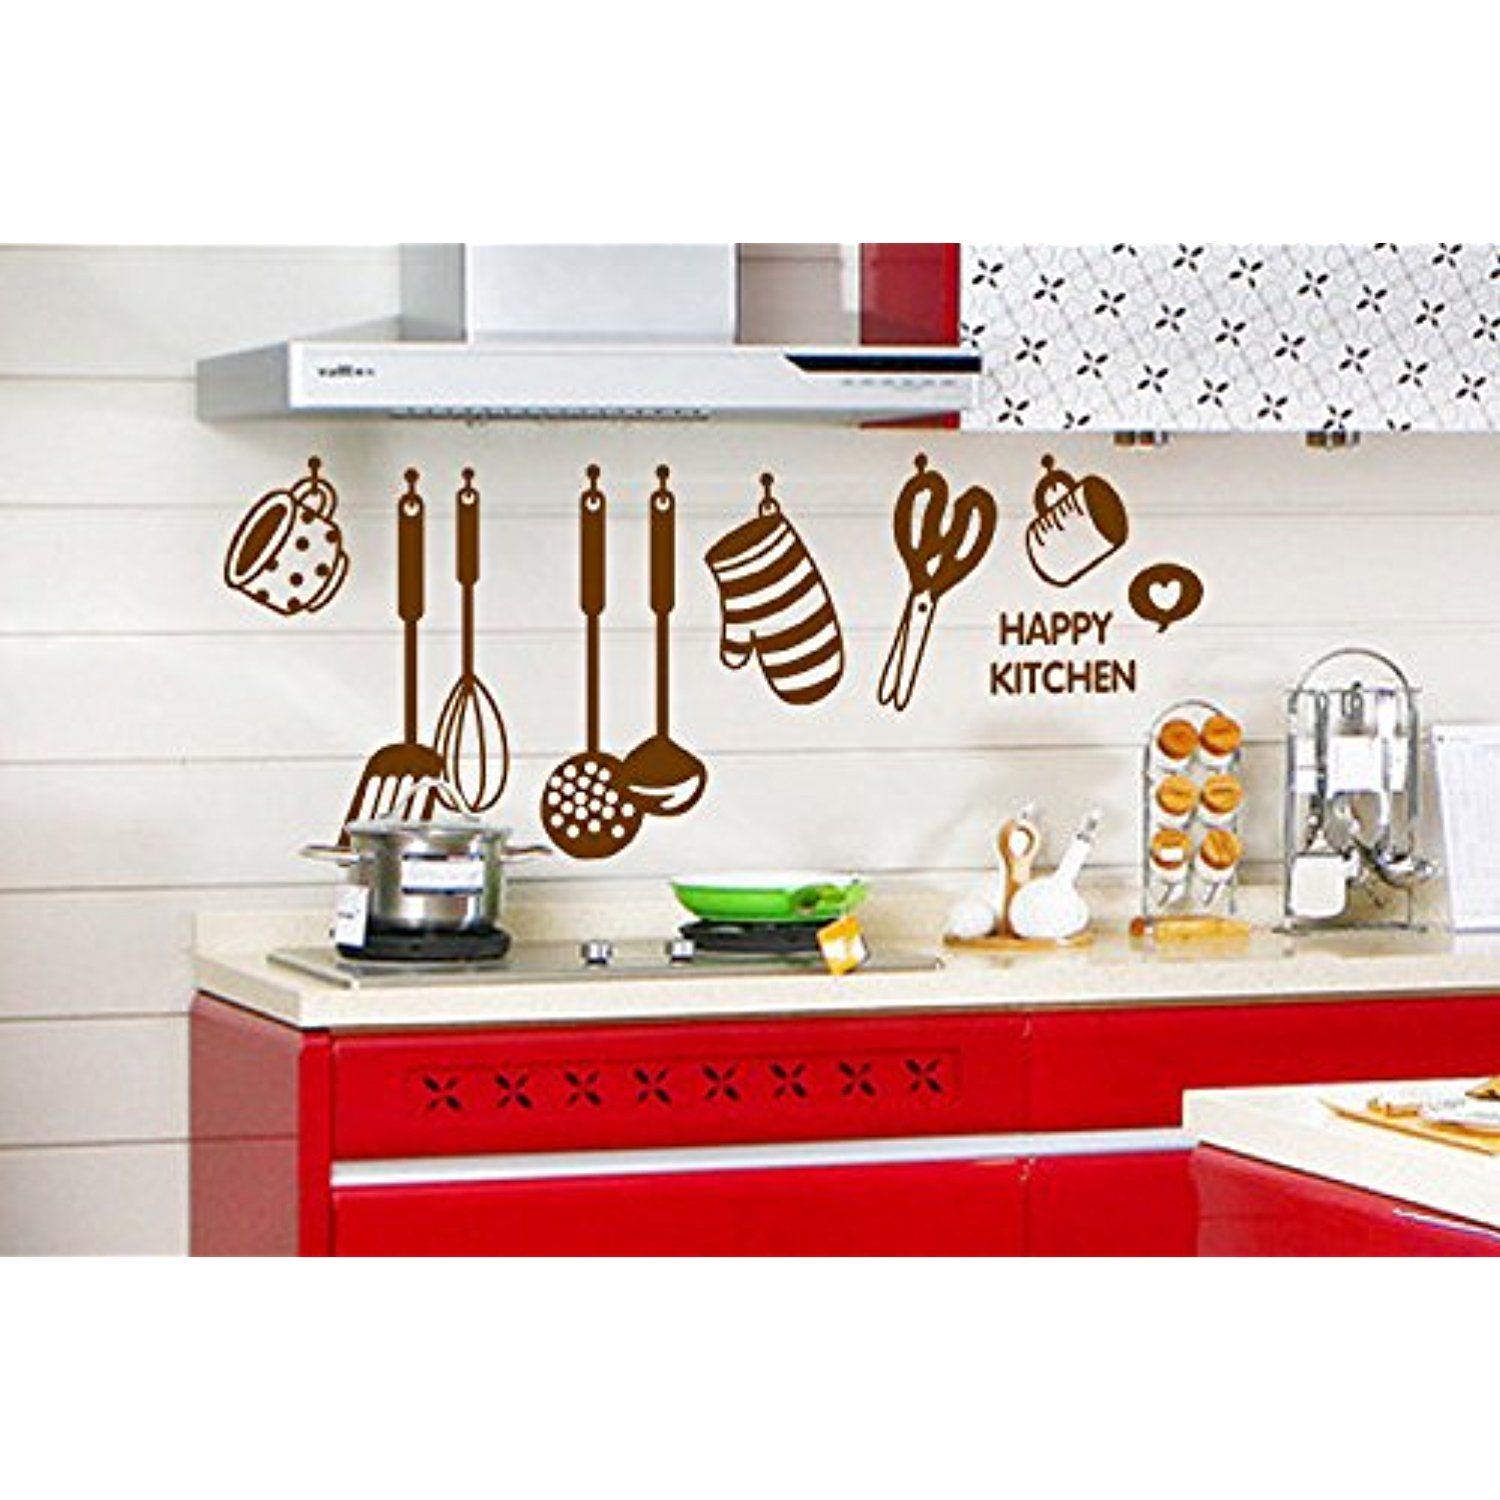 removable kitchen decorations creative home transparent on wall stickers for kitchen id=39375